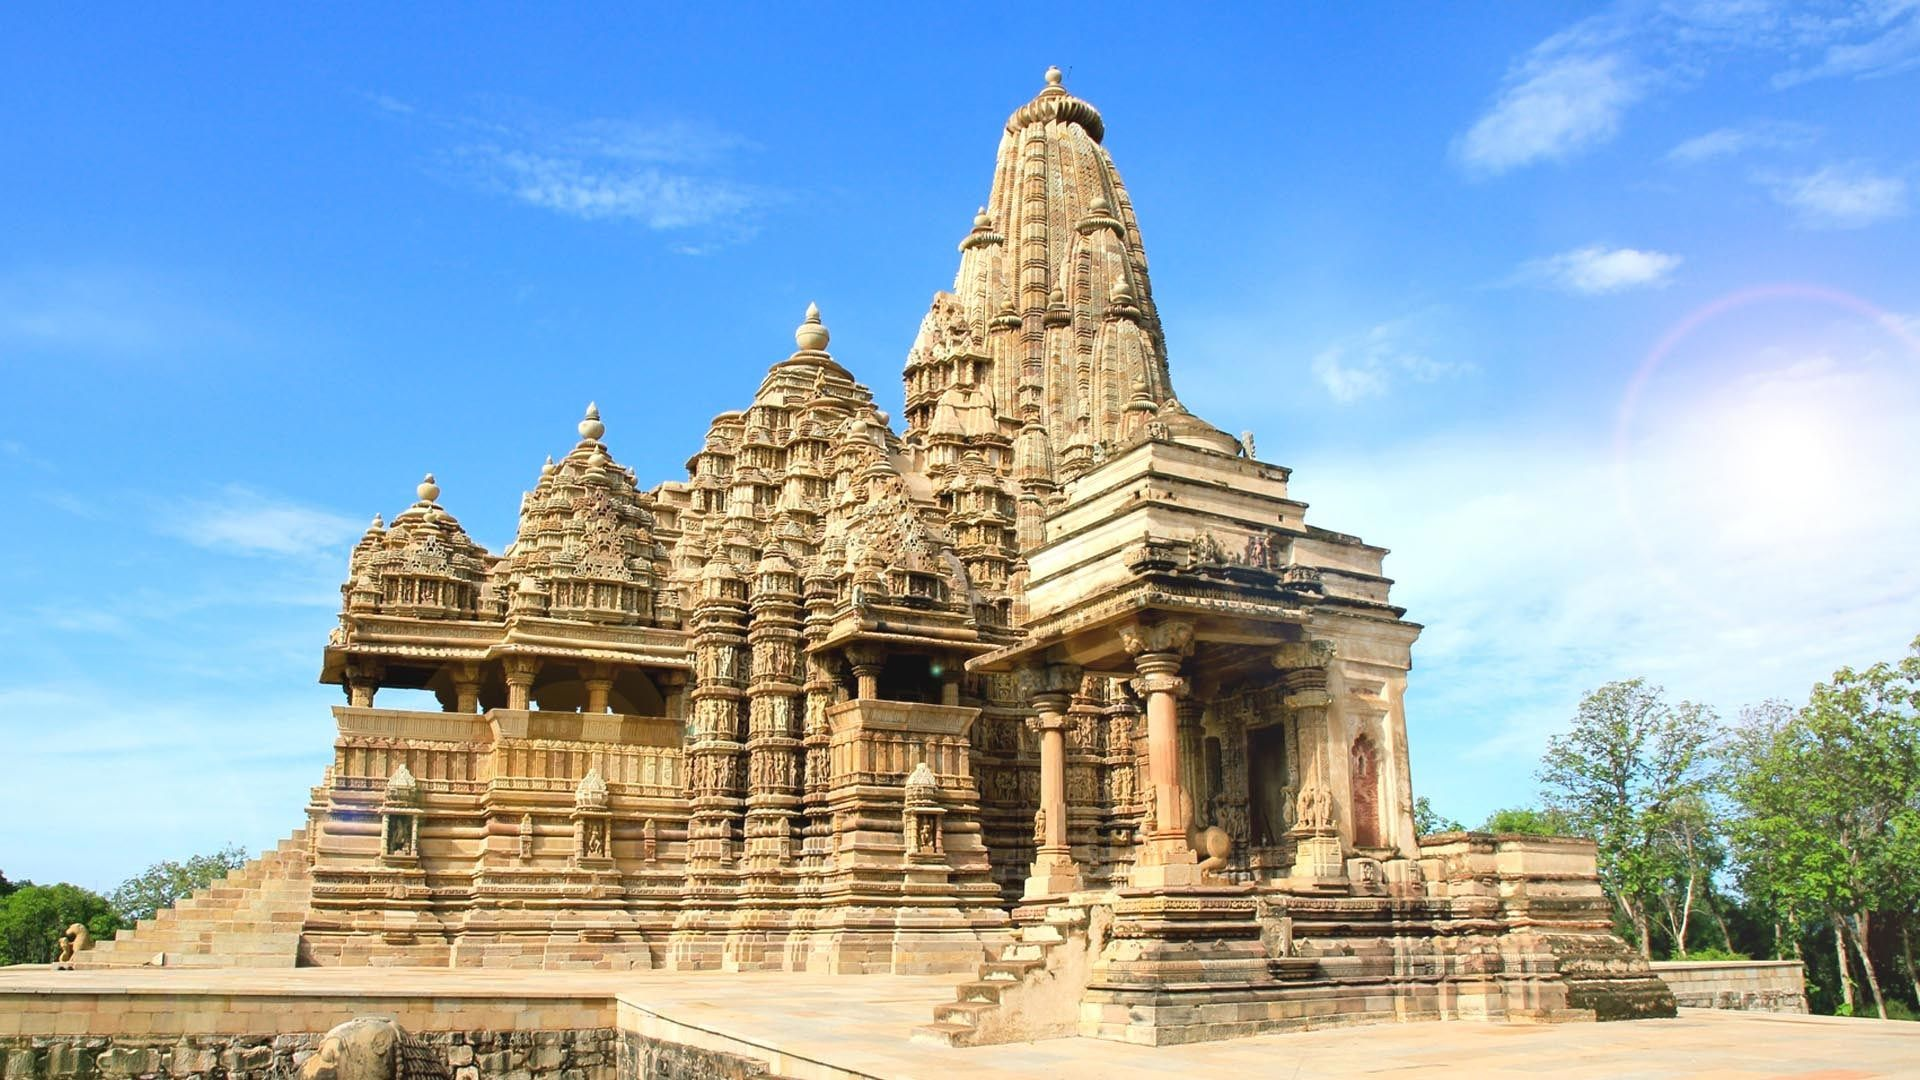 Khajuraho Temple Hd Wallpapers Images Free Download Temples Wallpapers Pinterest Temple